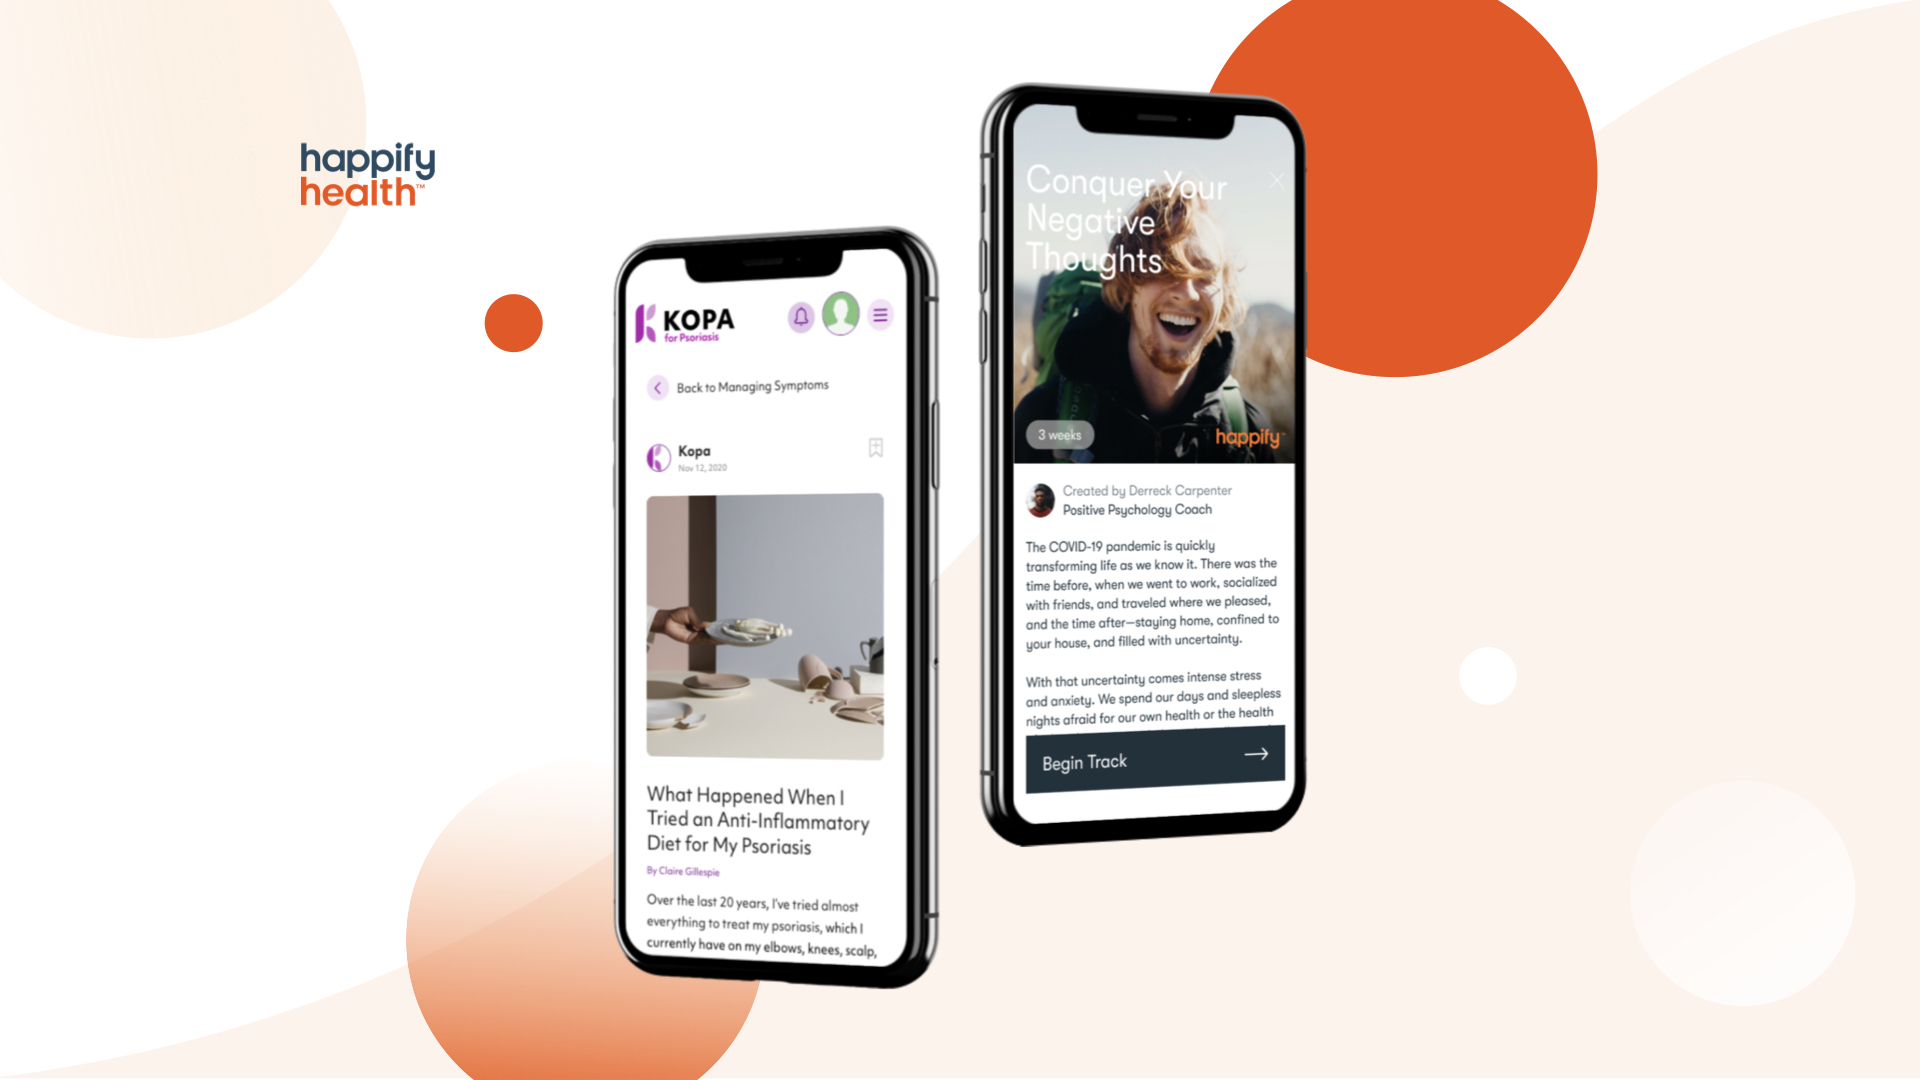 medcitynews.com - Elise Reuter - Happify rolls out digital therapeutic for anxiety, depression under temporary FDA guidance